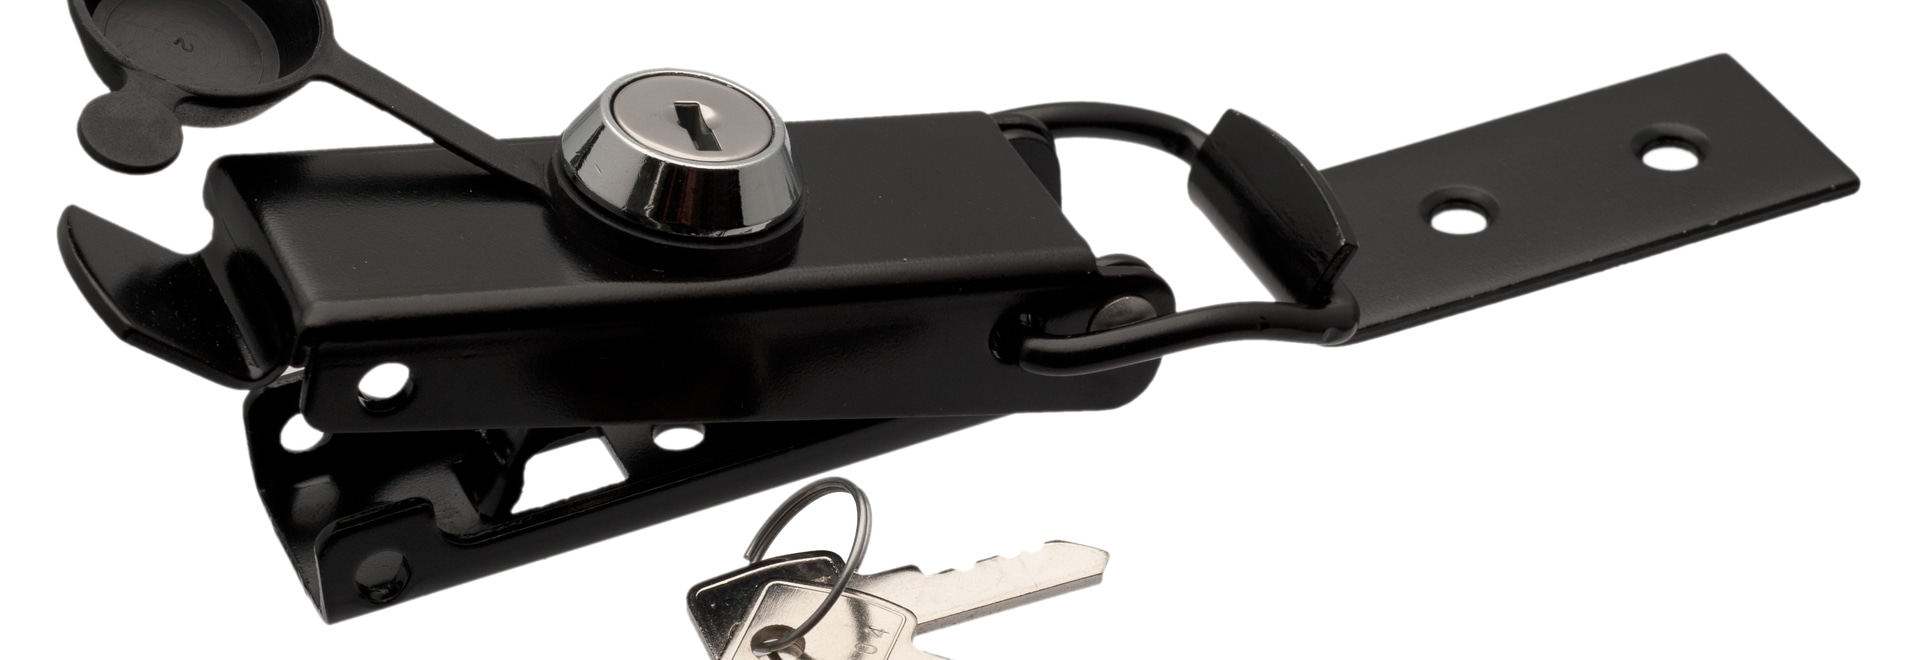 Black toggle latch with key-lock